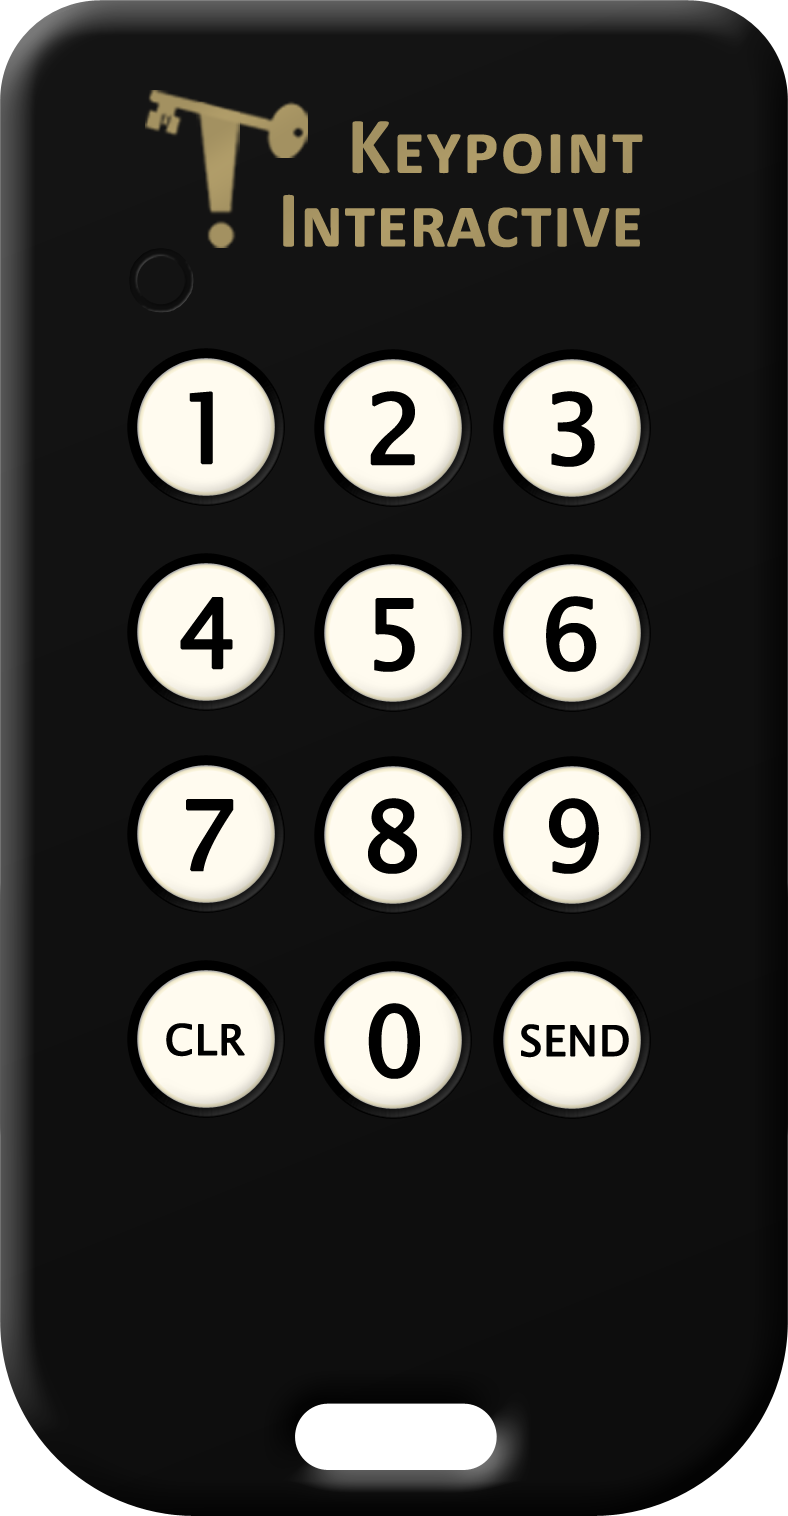 25 Keypad System Featuring 12 Button Keypads Keypoint